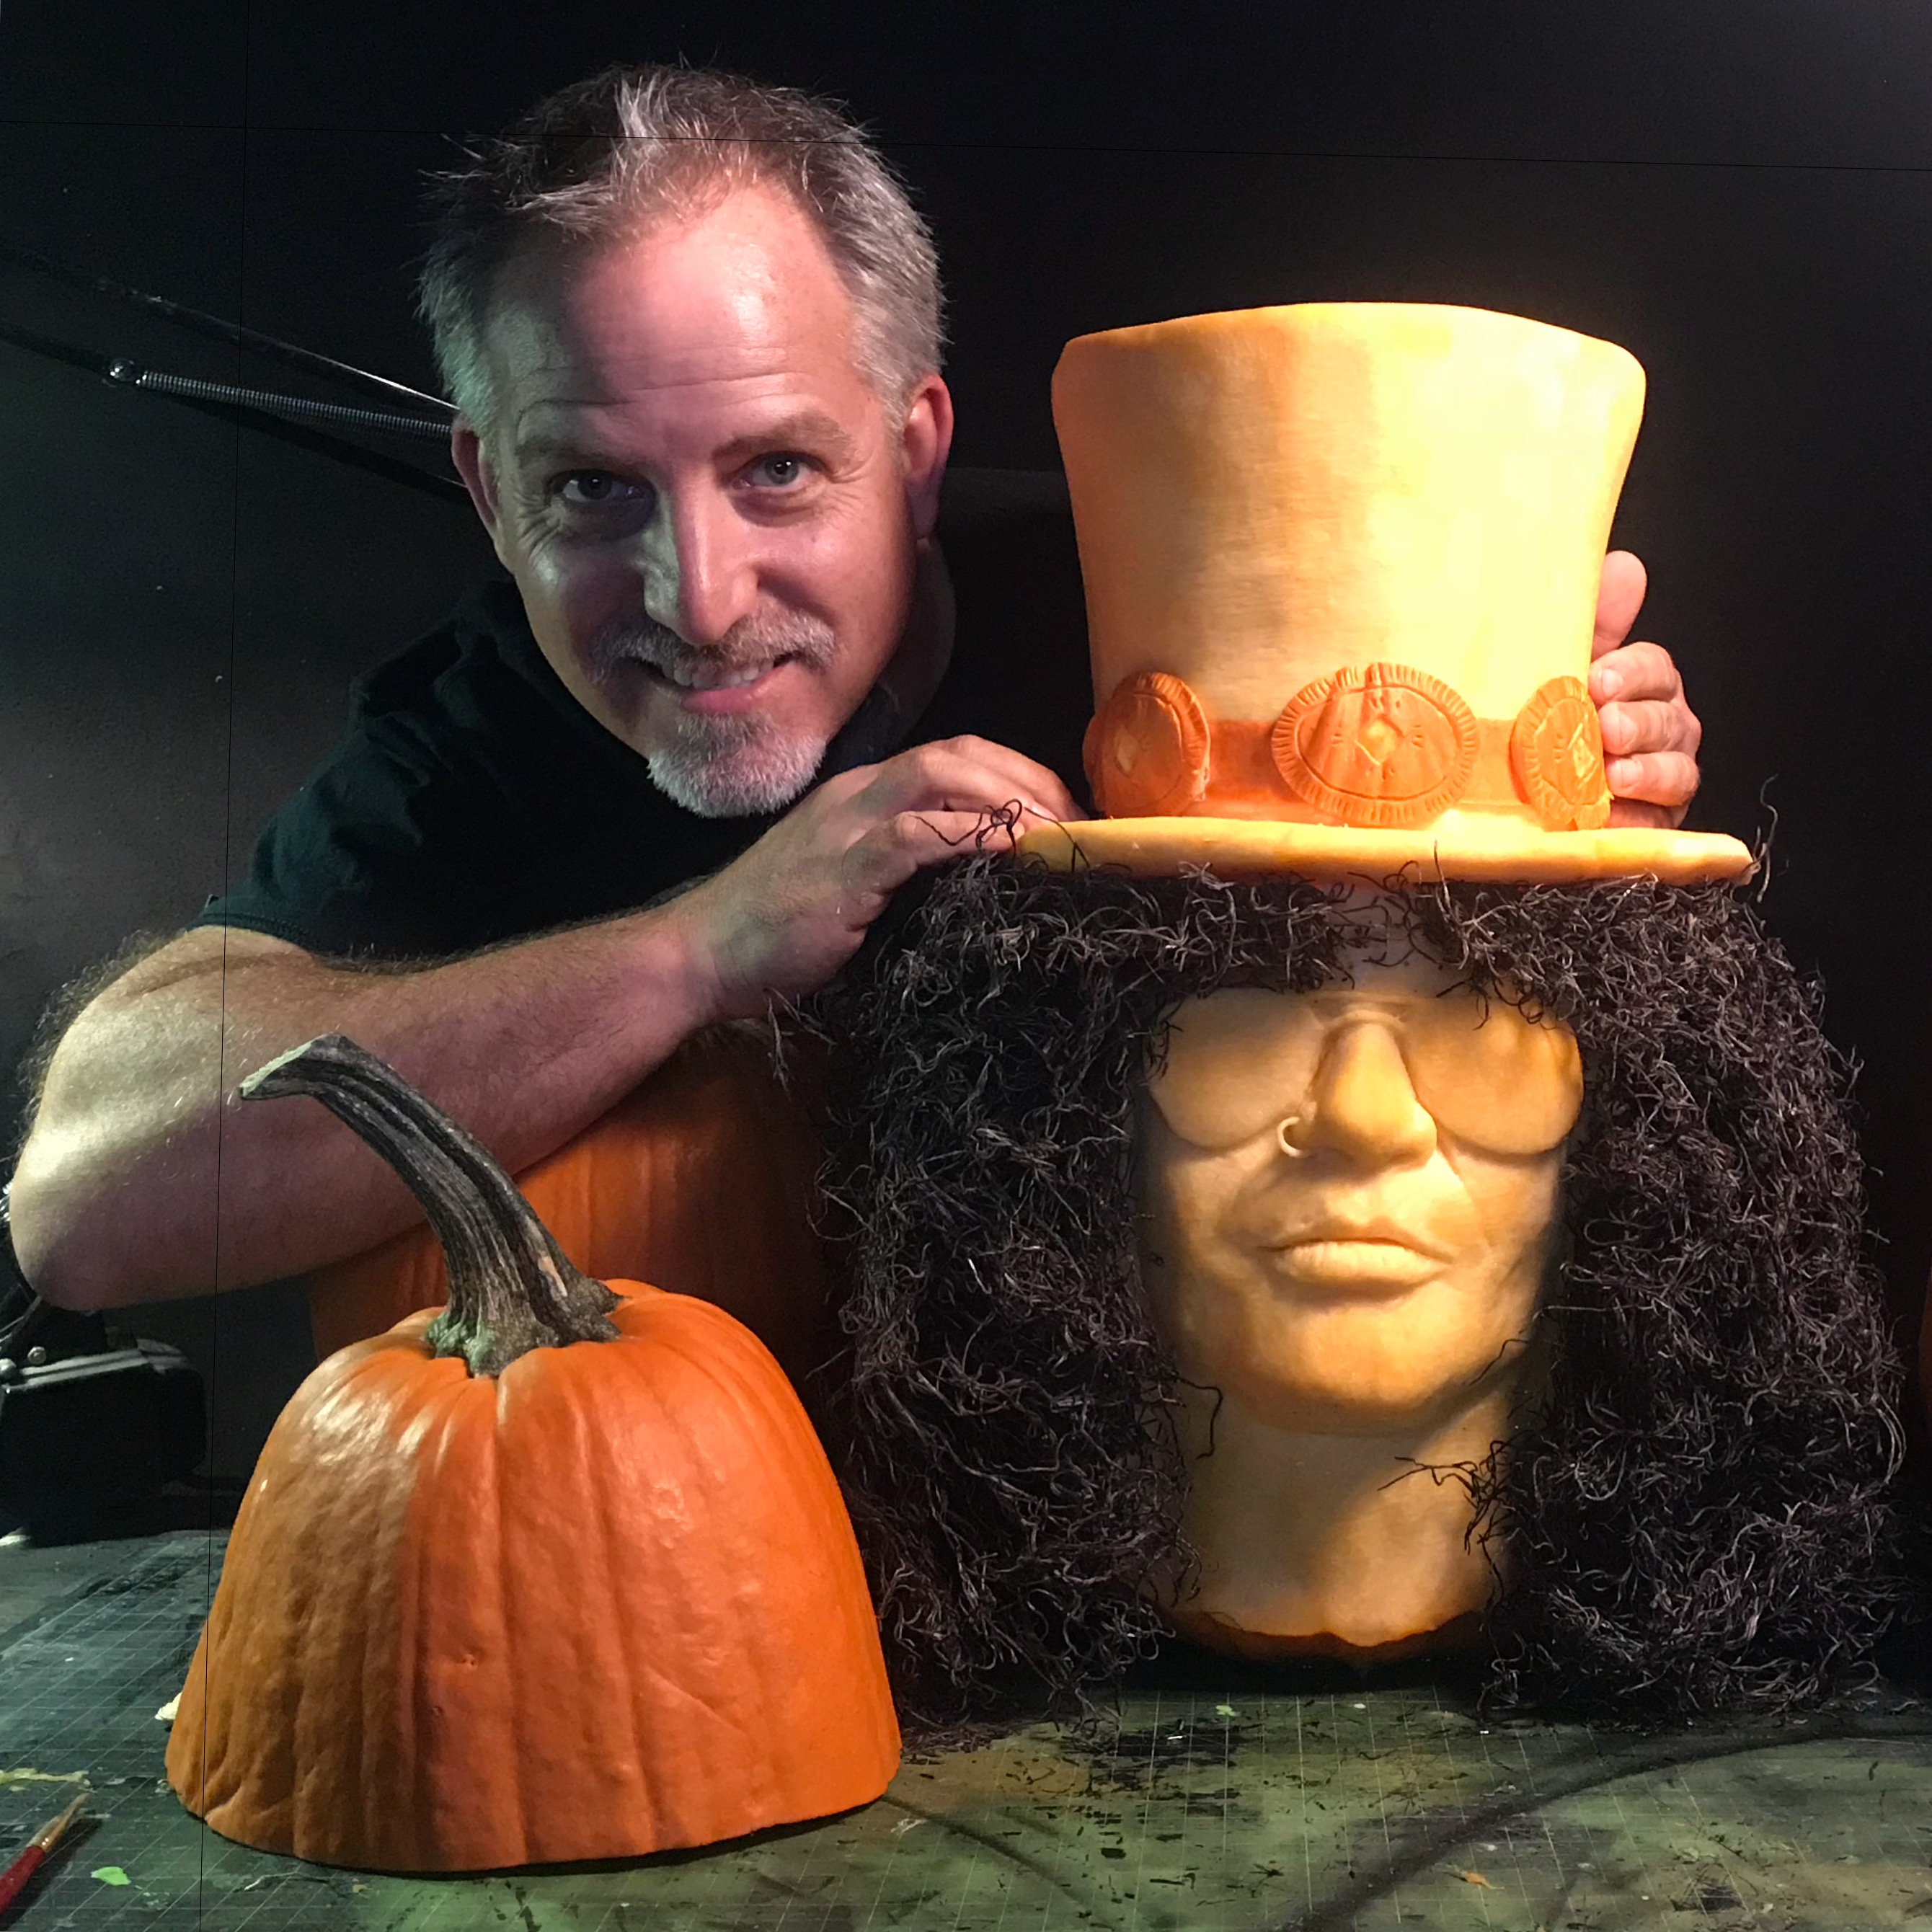 Slash the Pumpkin